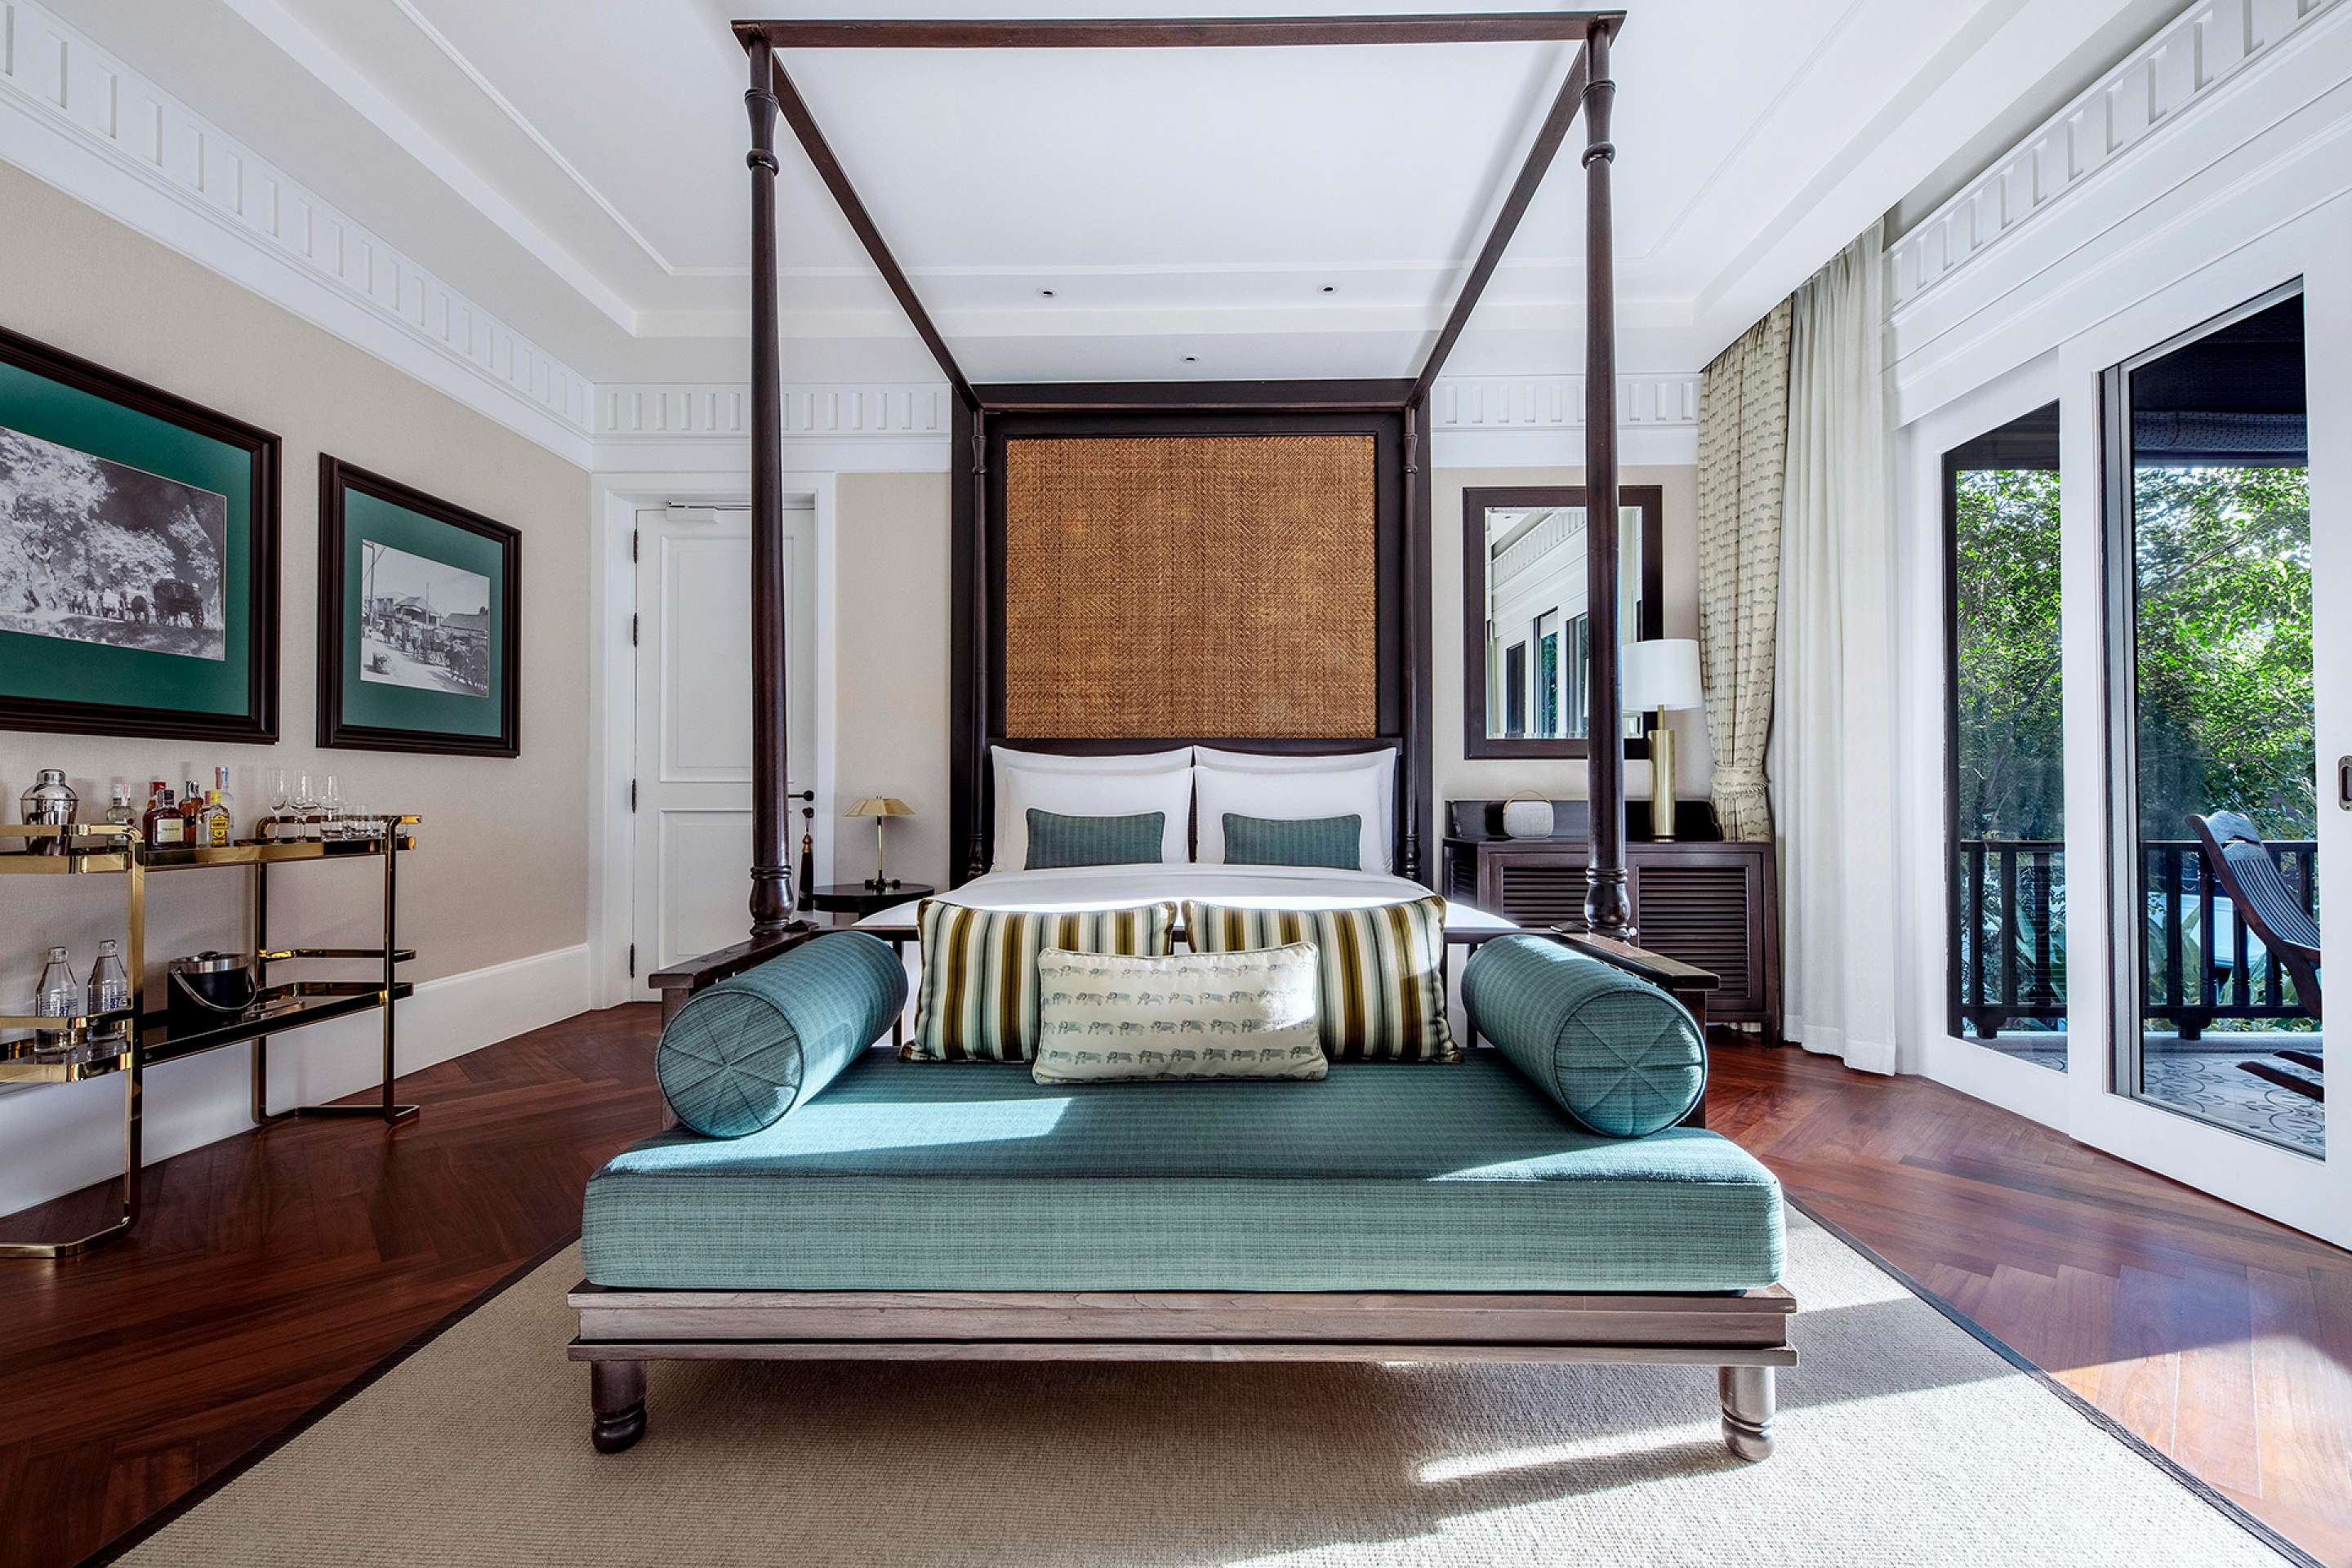 Rajah Brooke Suite Bedroom